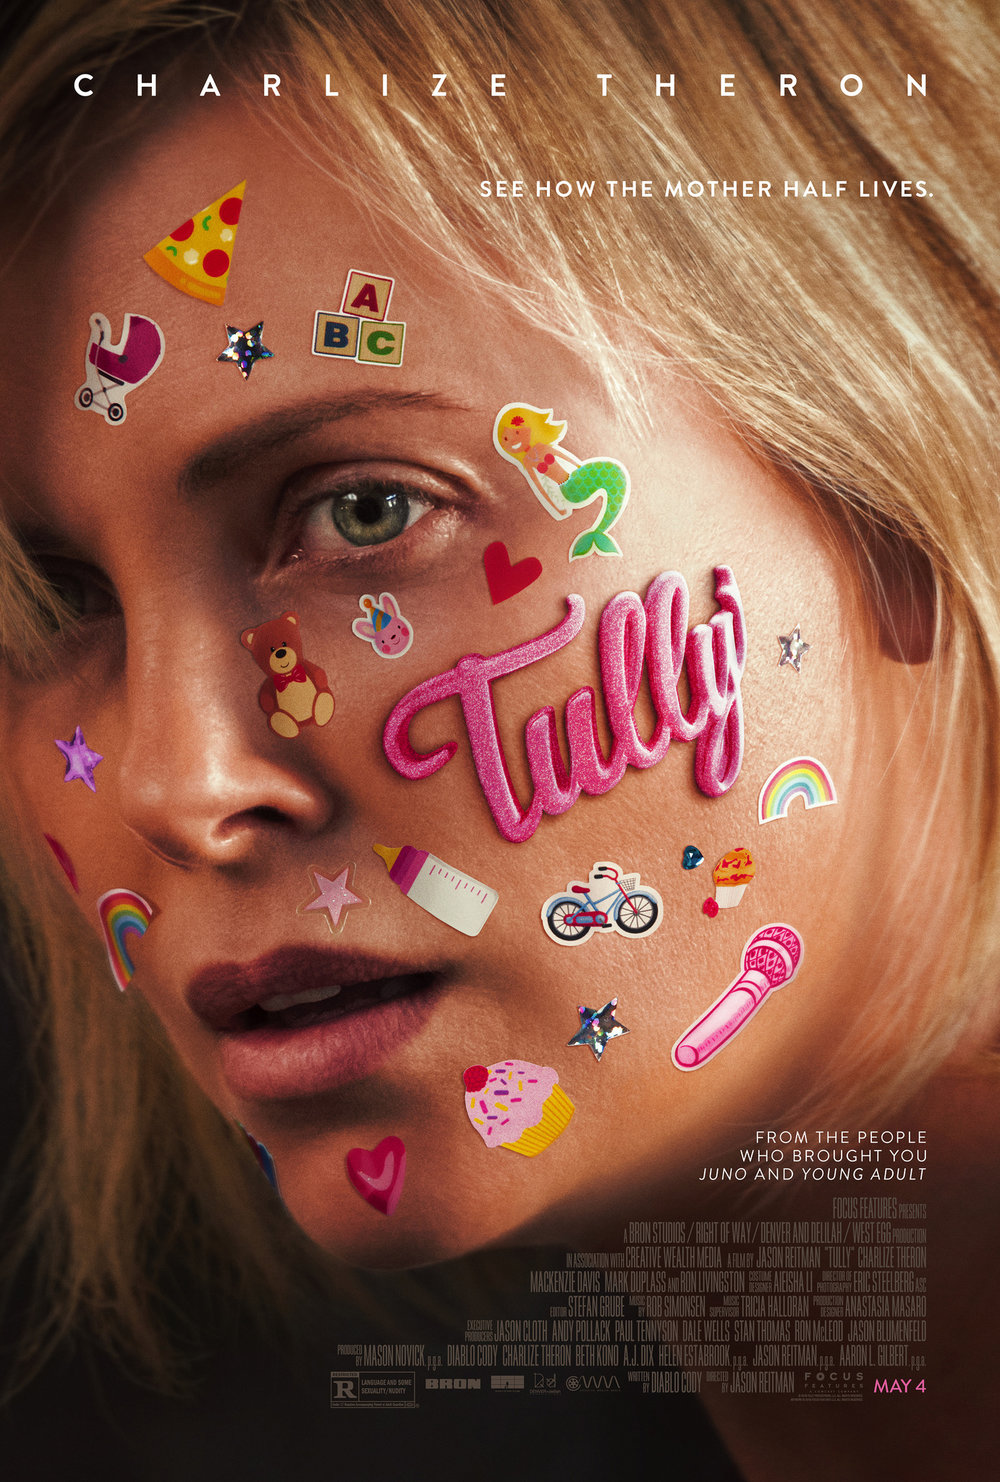 Tully is, strangely, a movie that benefits from me not telling you much about it, other than that it captures the frustrations of being an adult and a parent better than any other movie this year. -